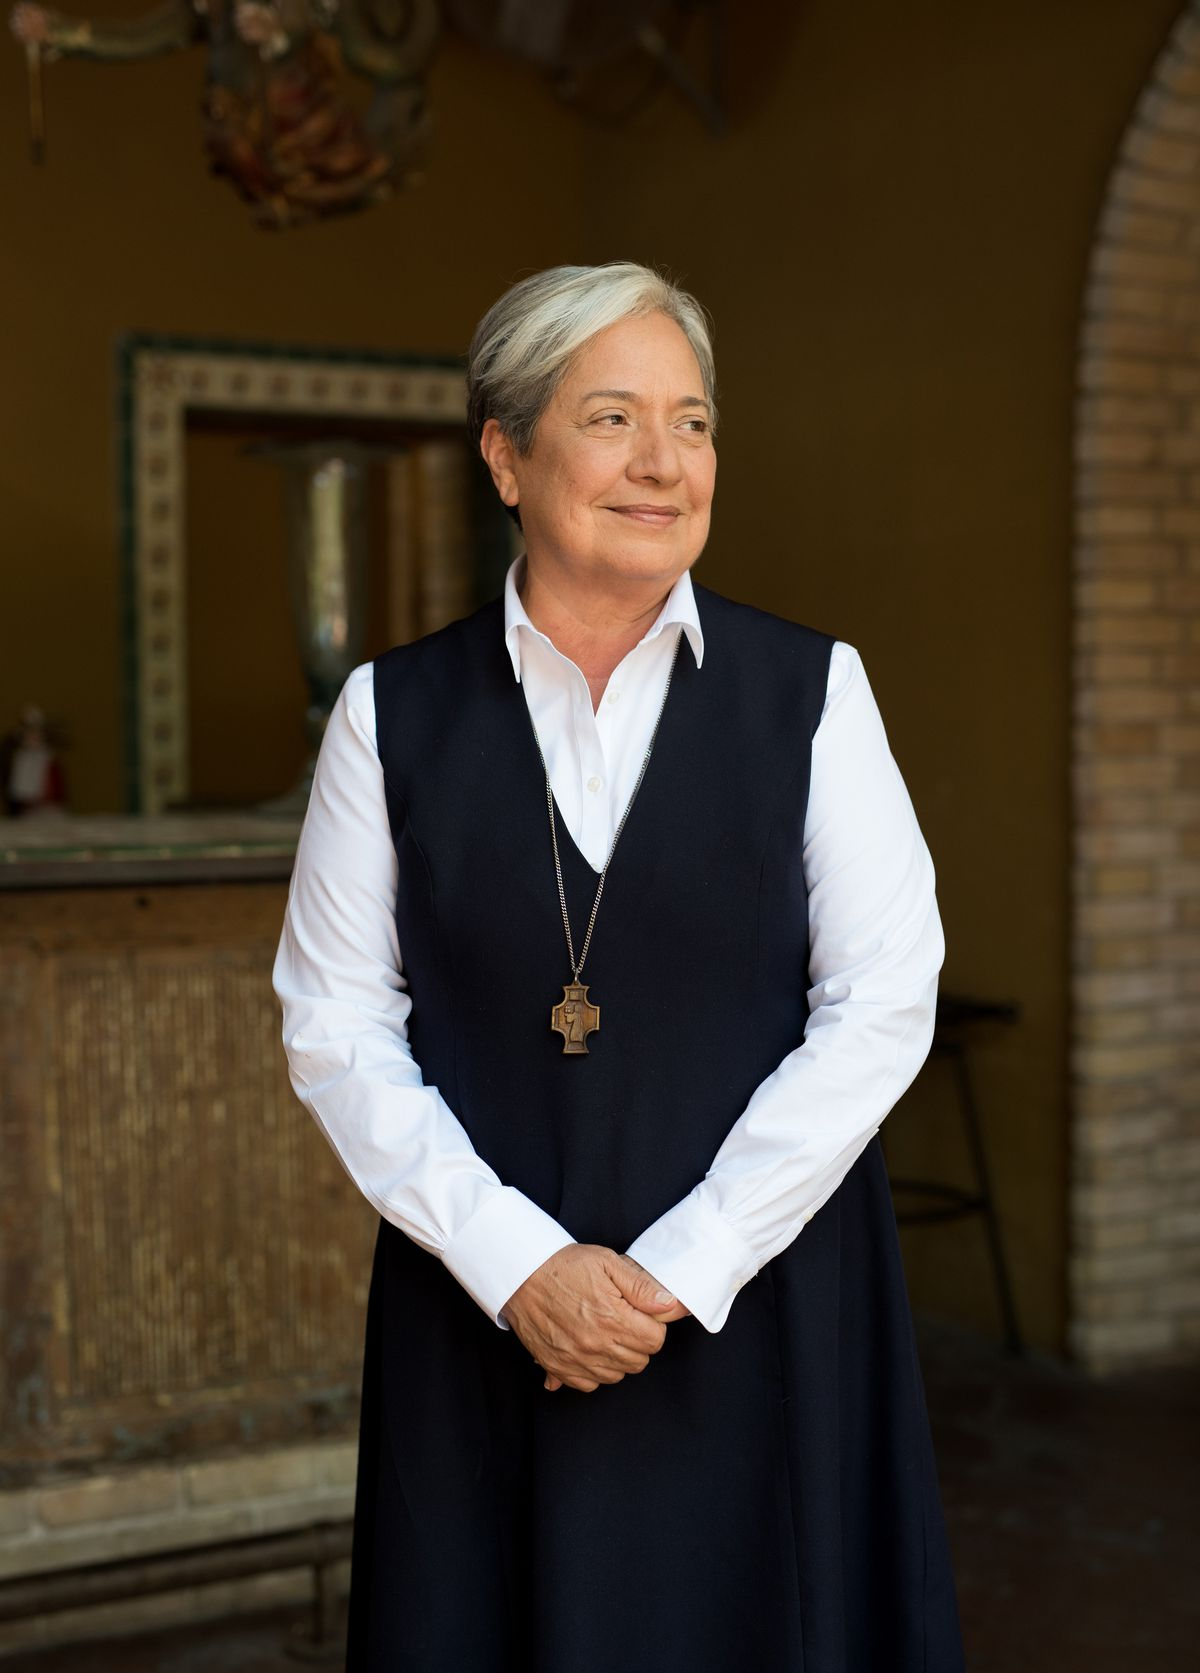 Sister Norma Pimentel, executive director of Catholic Charities of the Rio Grande Valley, poses for a portrait in McAllen, Texas, on July 19, 2018.